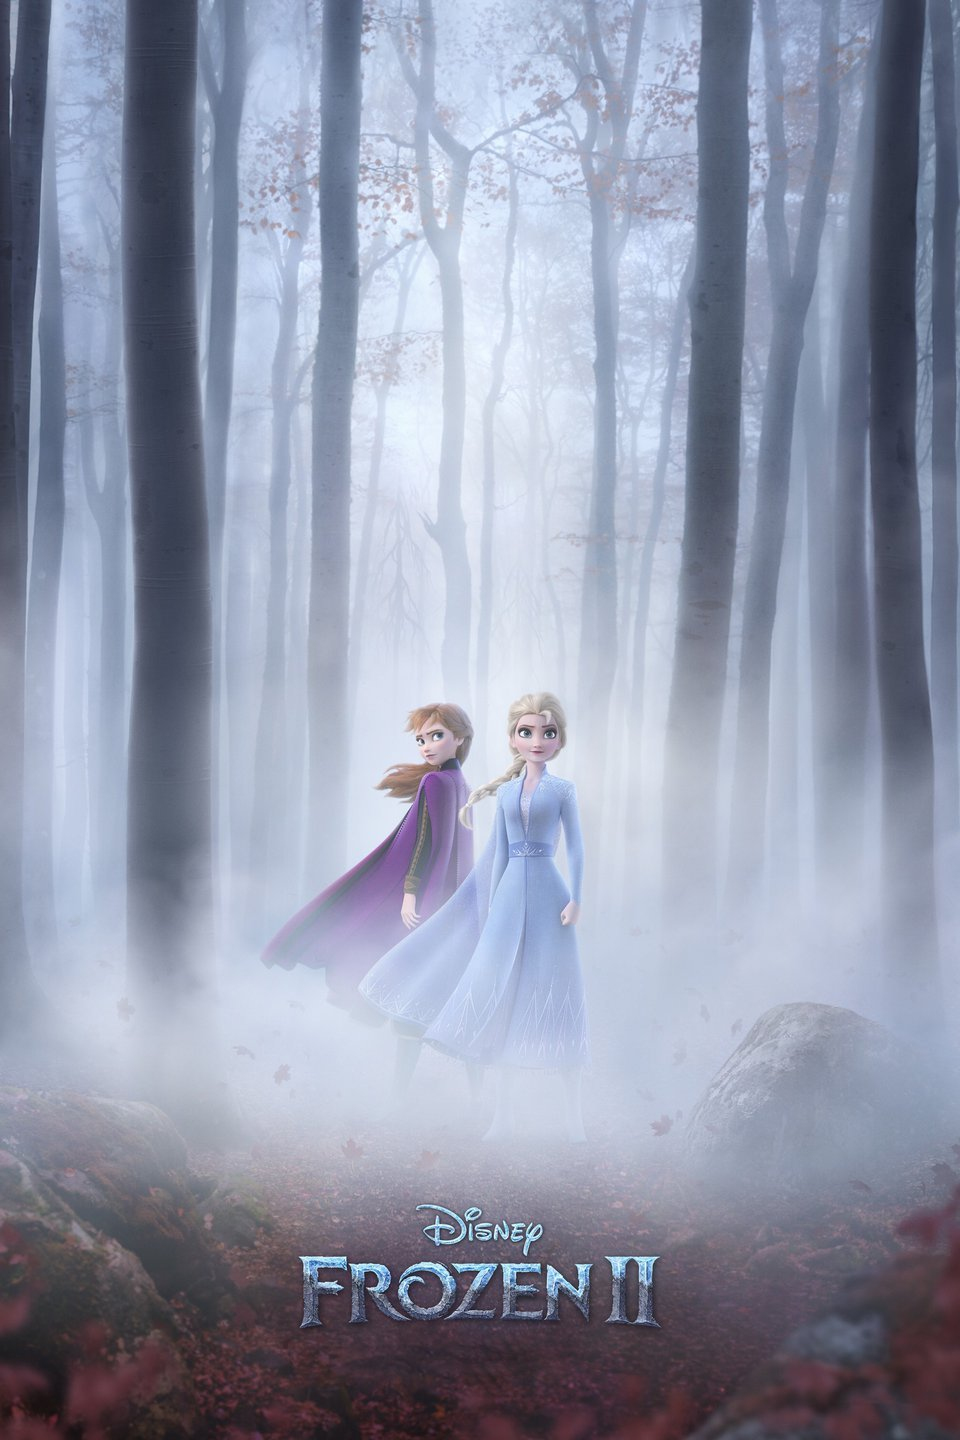 A picture of Anna and Elsa standing in a foggy forest.